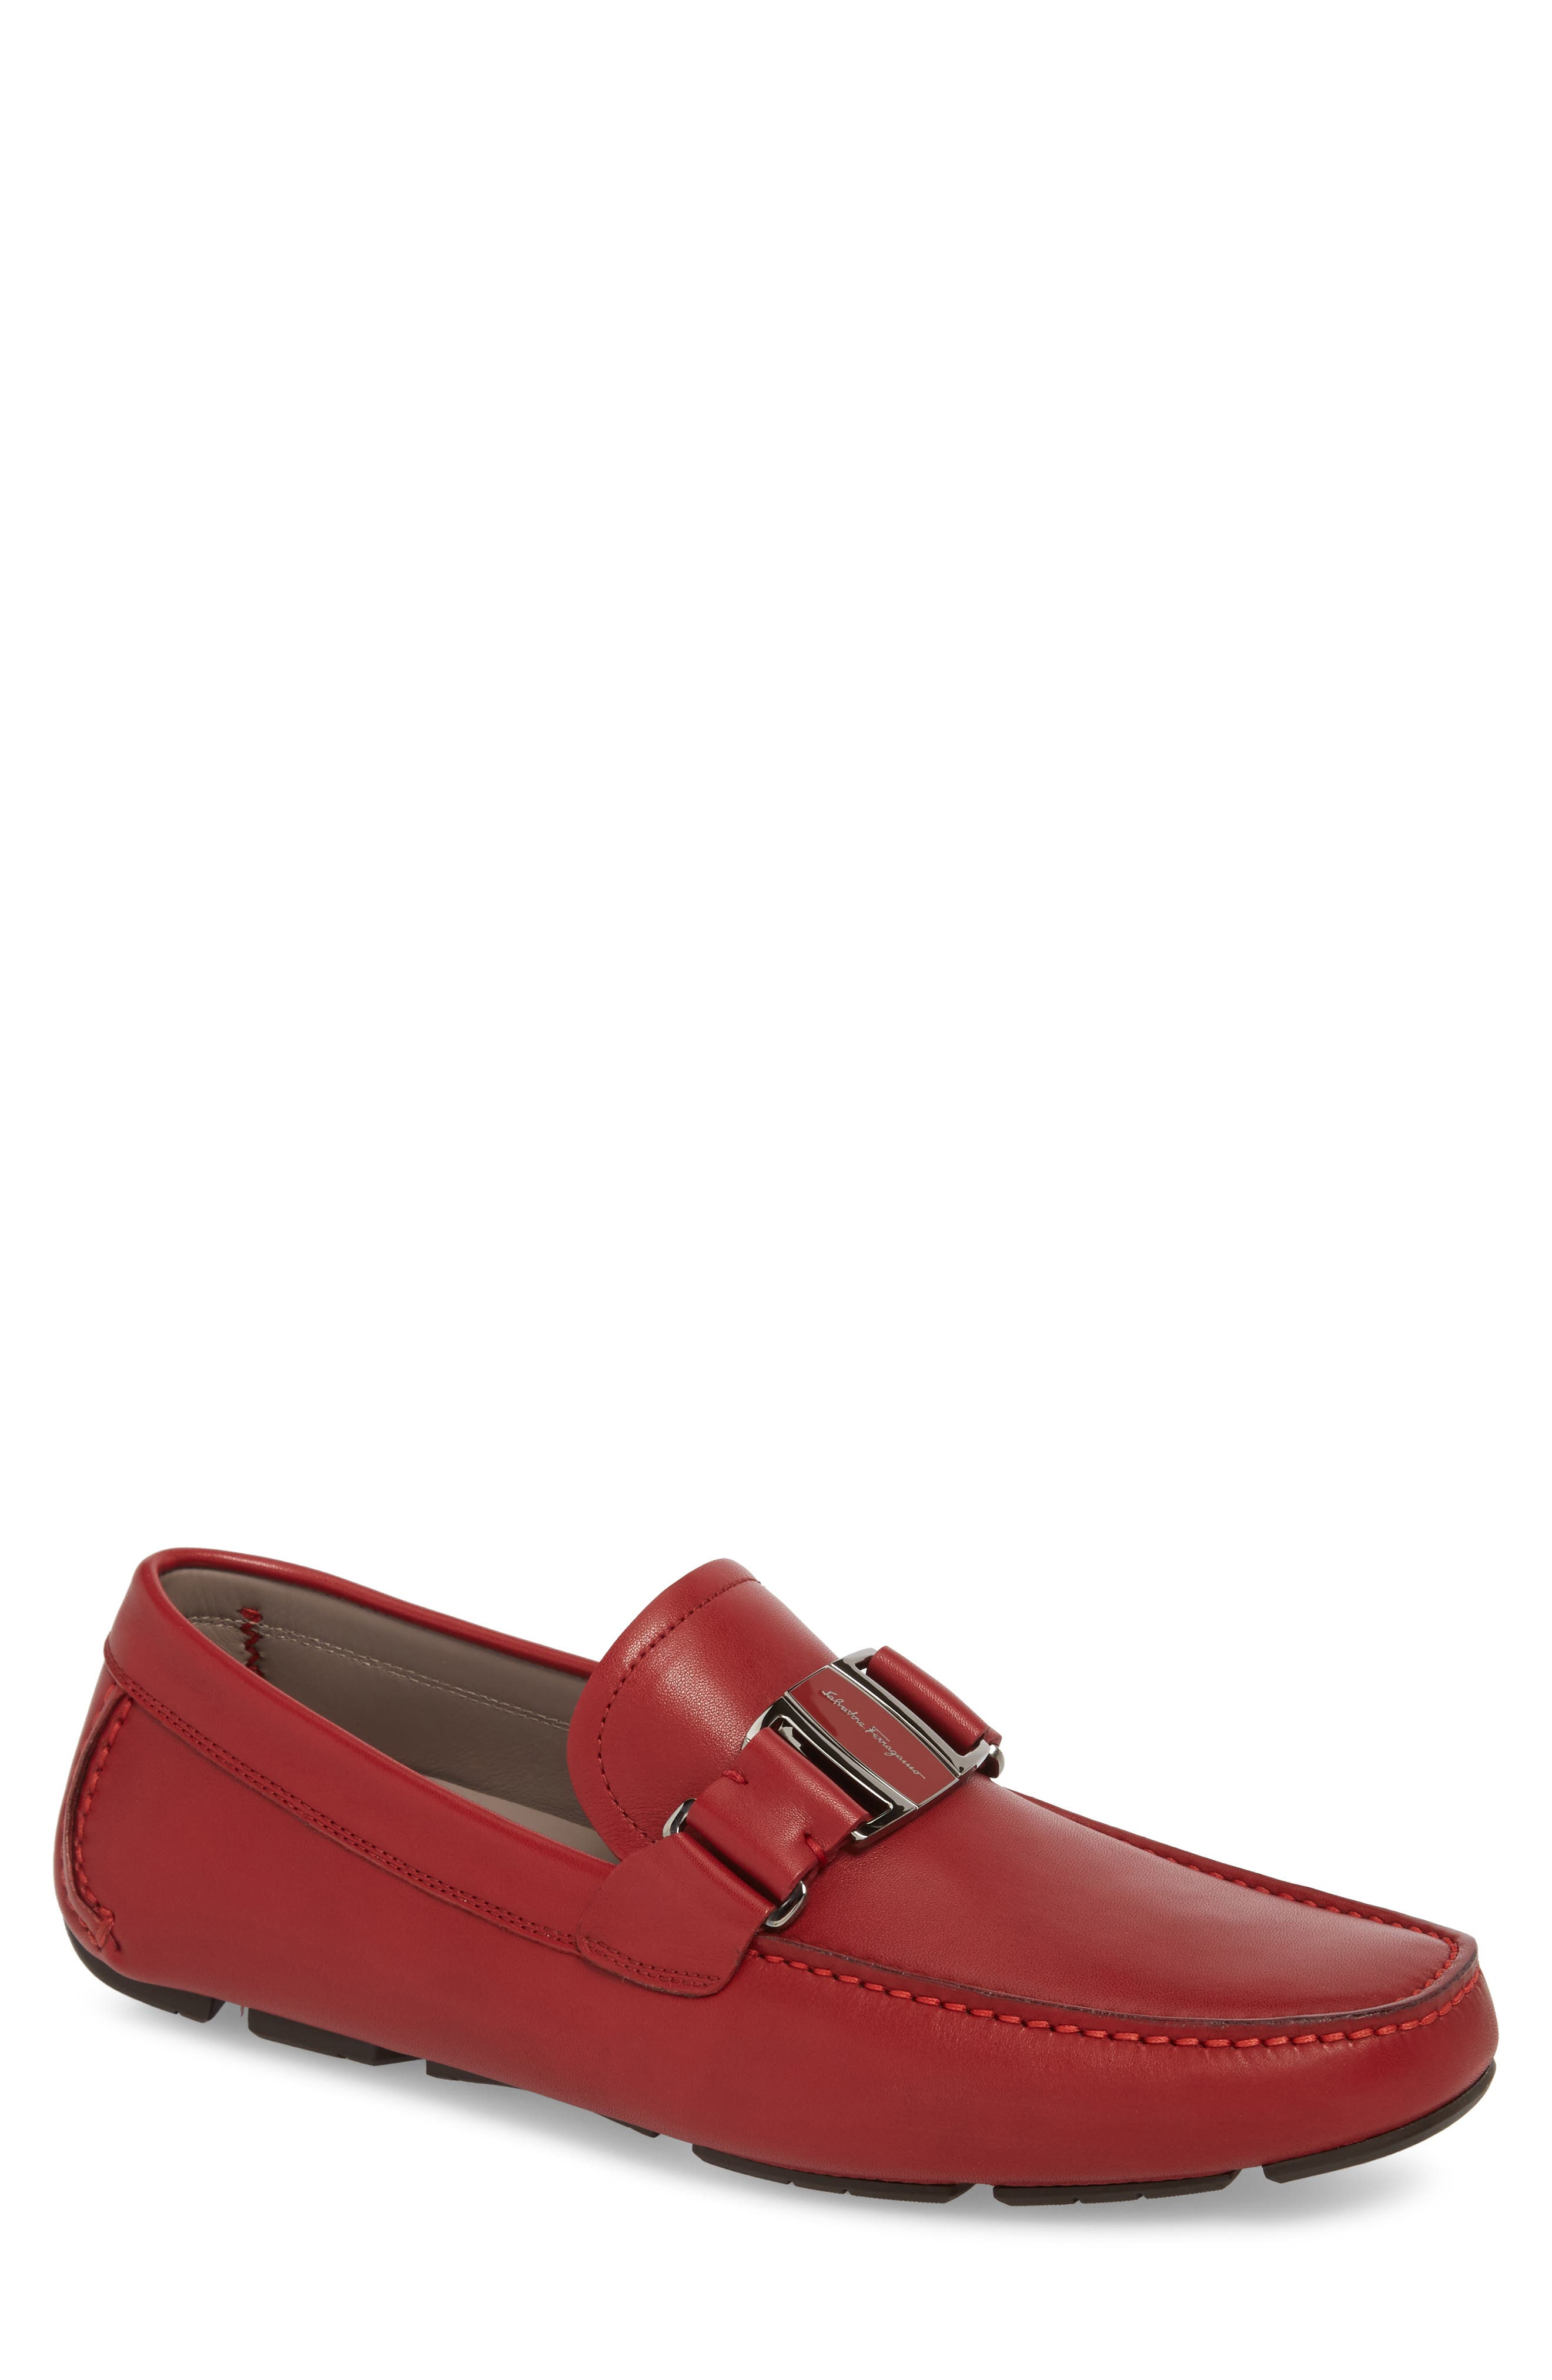 Sardegna Driving Shoe,                             Main thumbnail 1, color,                             Red Leather